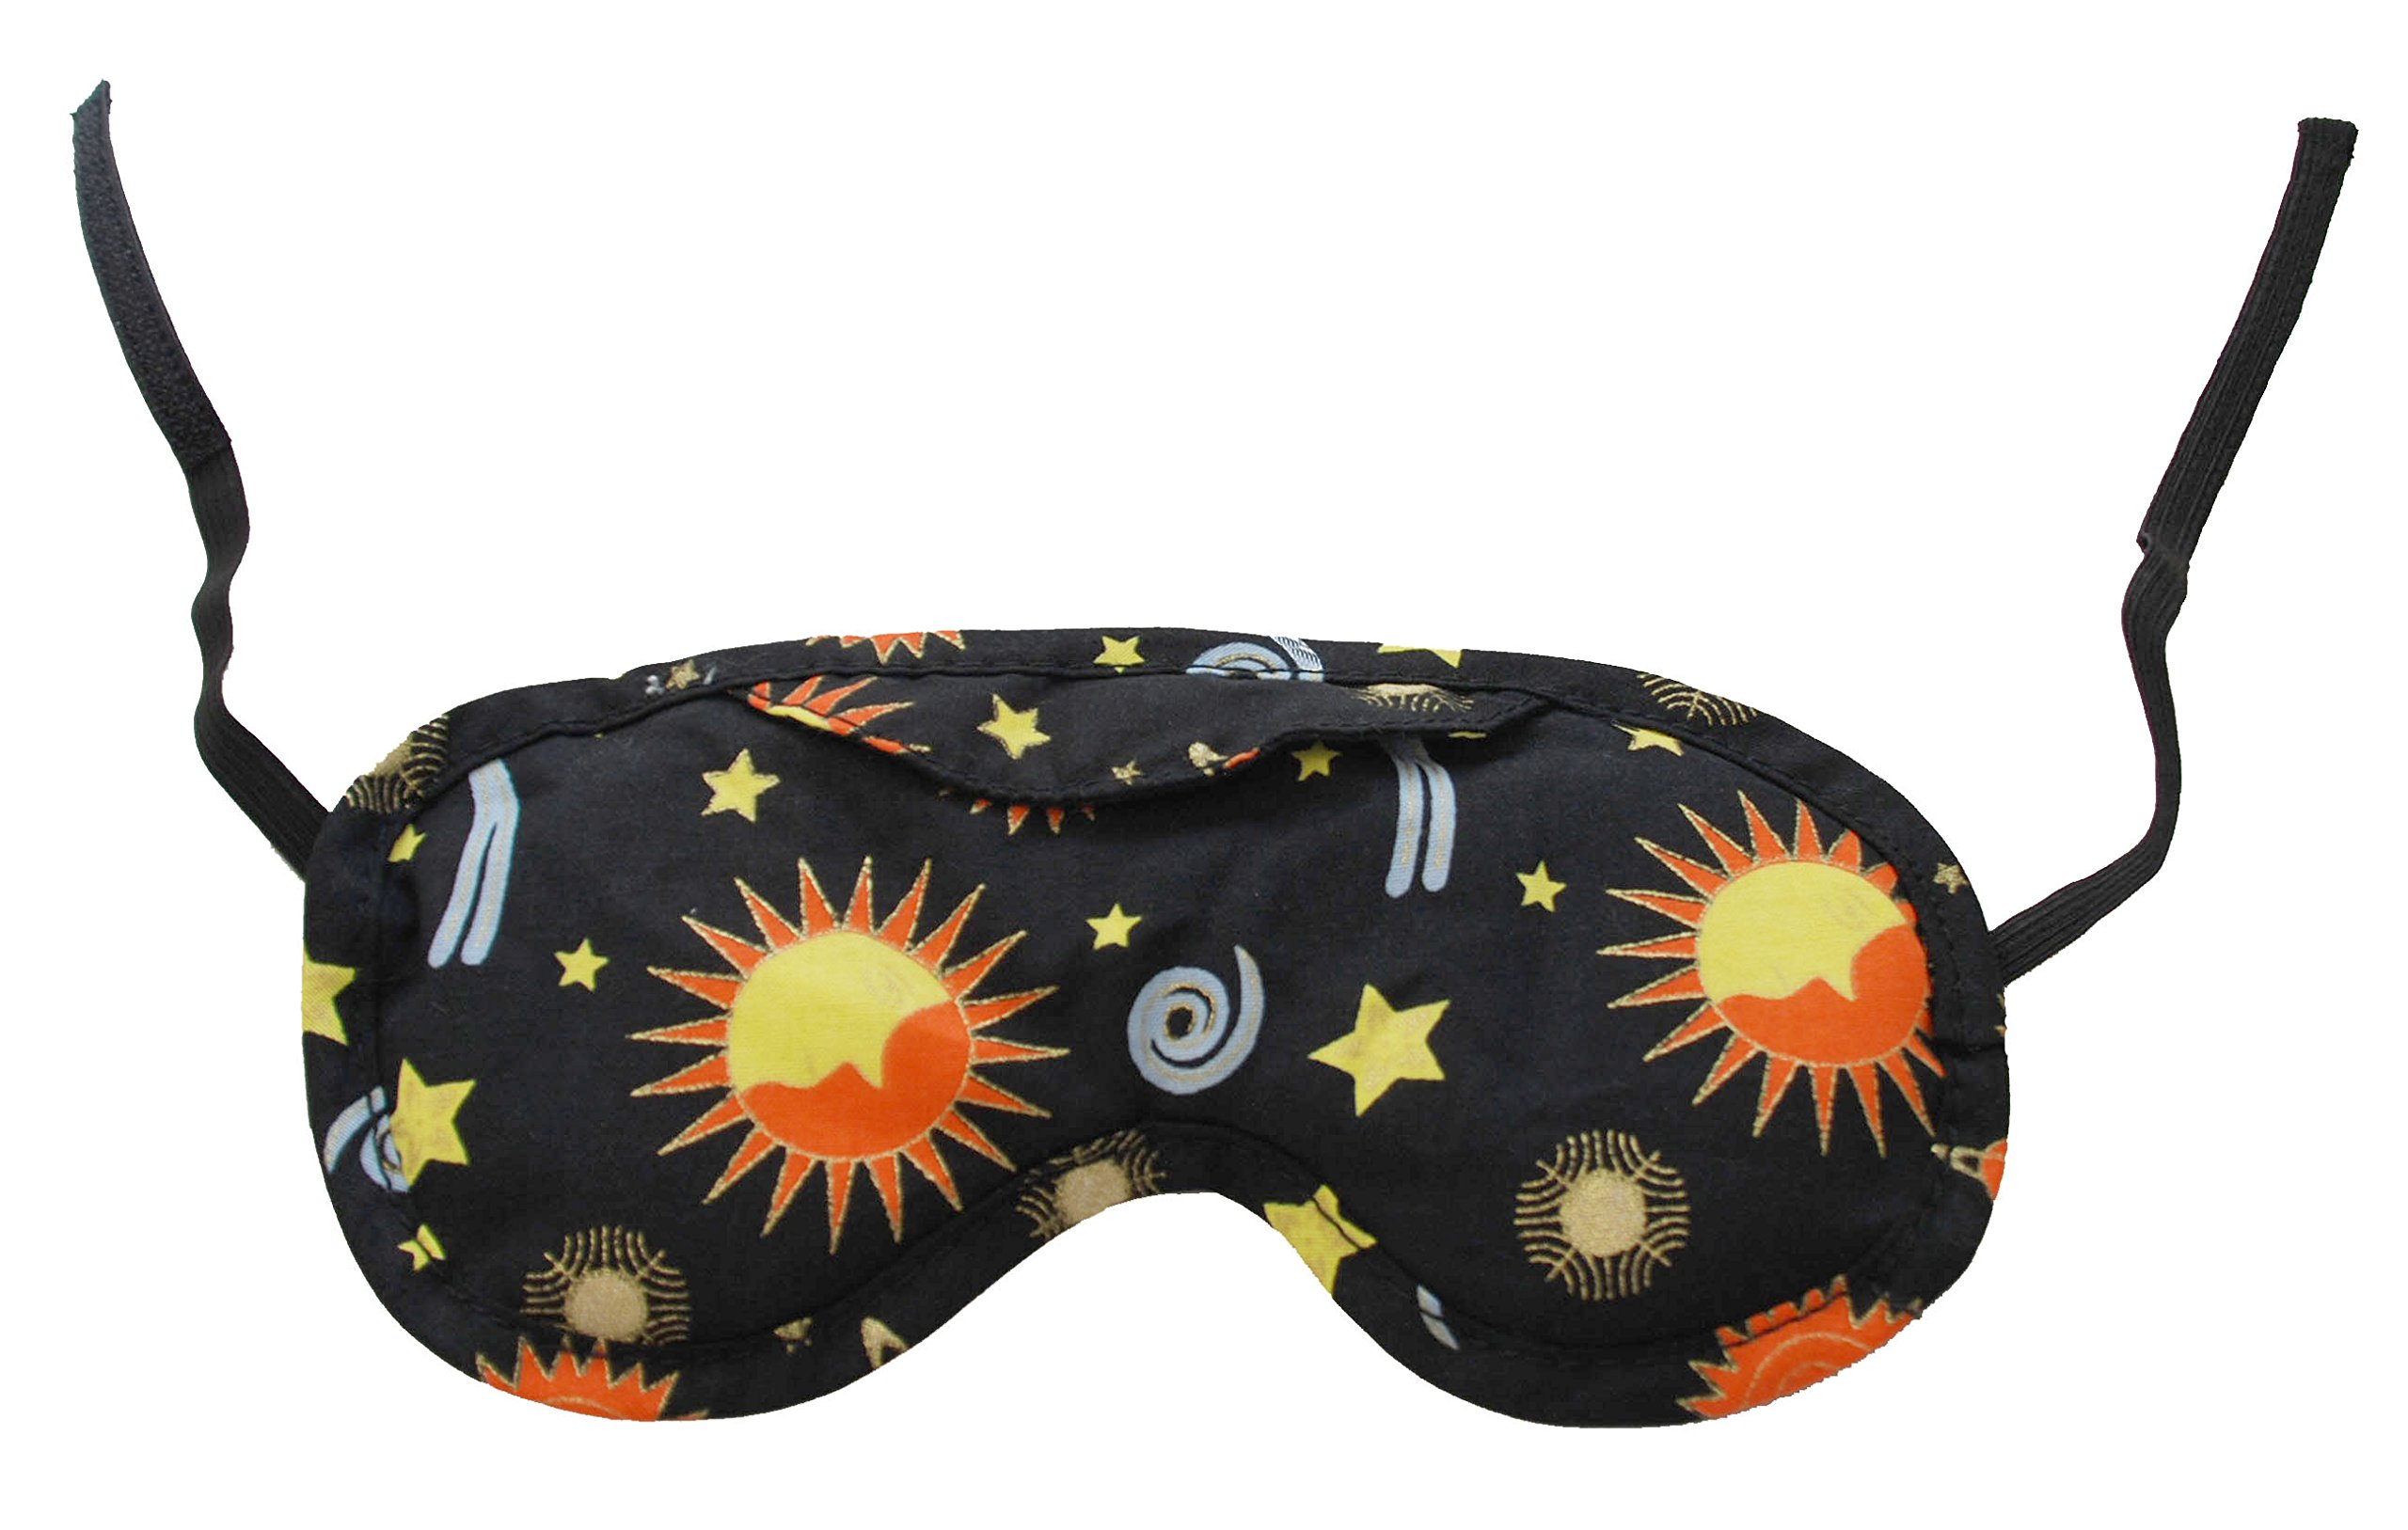 Nature's Approach Aromatherapy Lavender Eye Pillow with Satin Backing Herbal Pack, Celestial Black